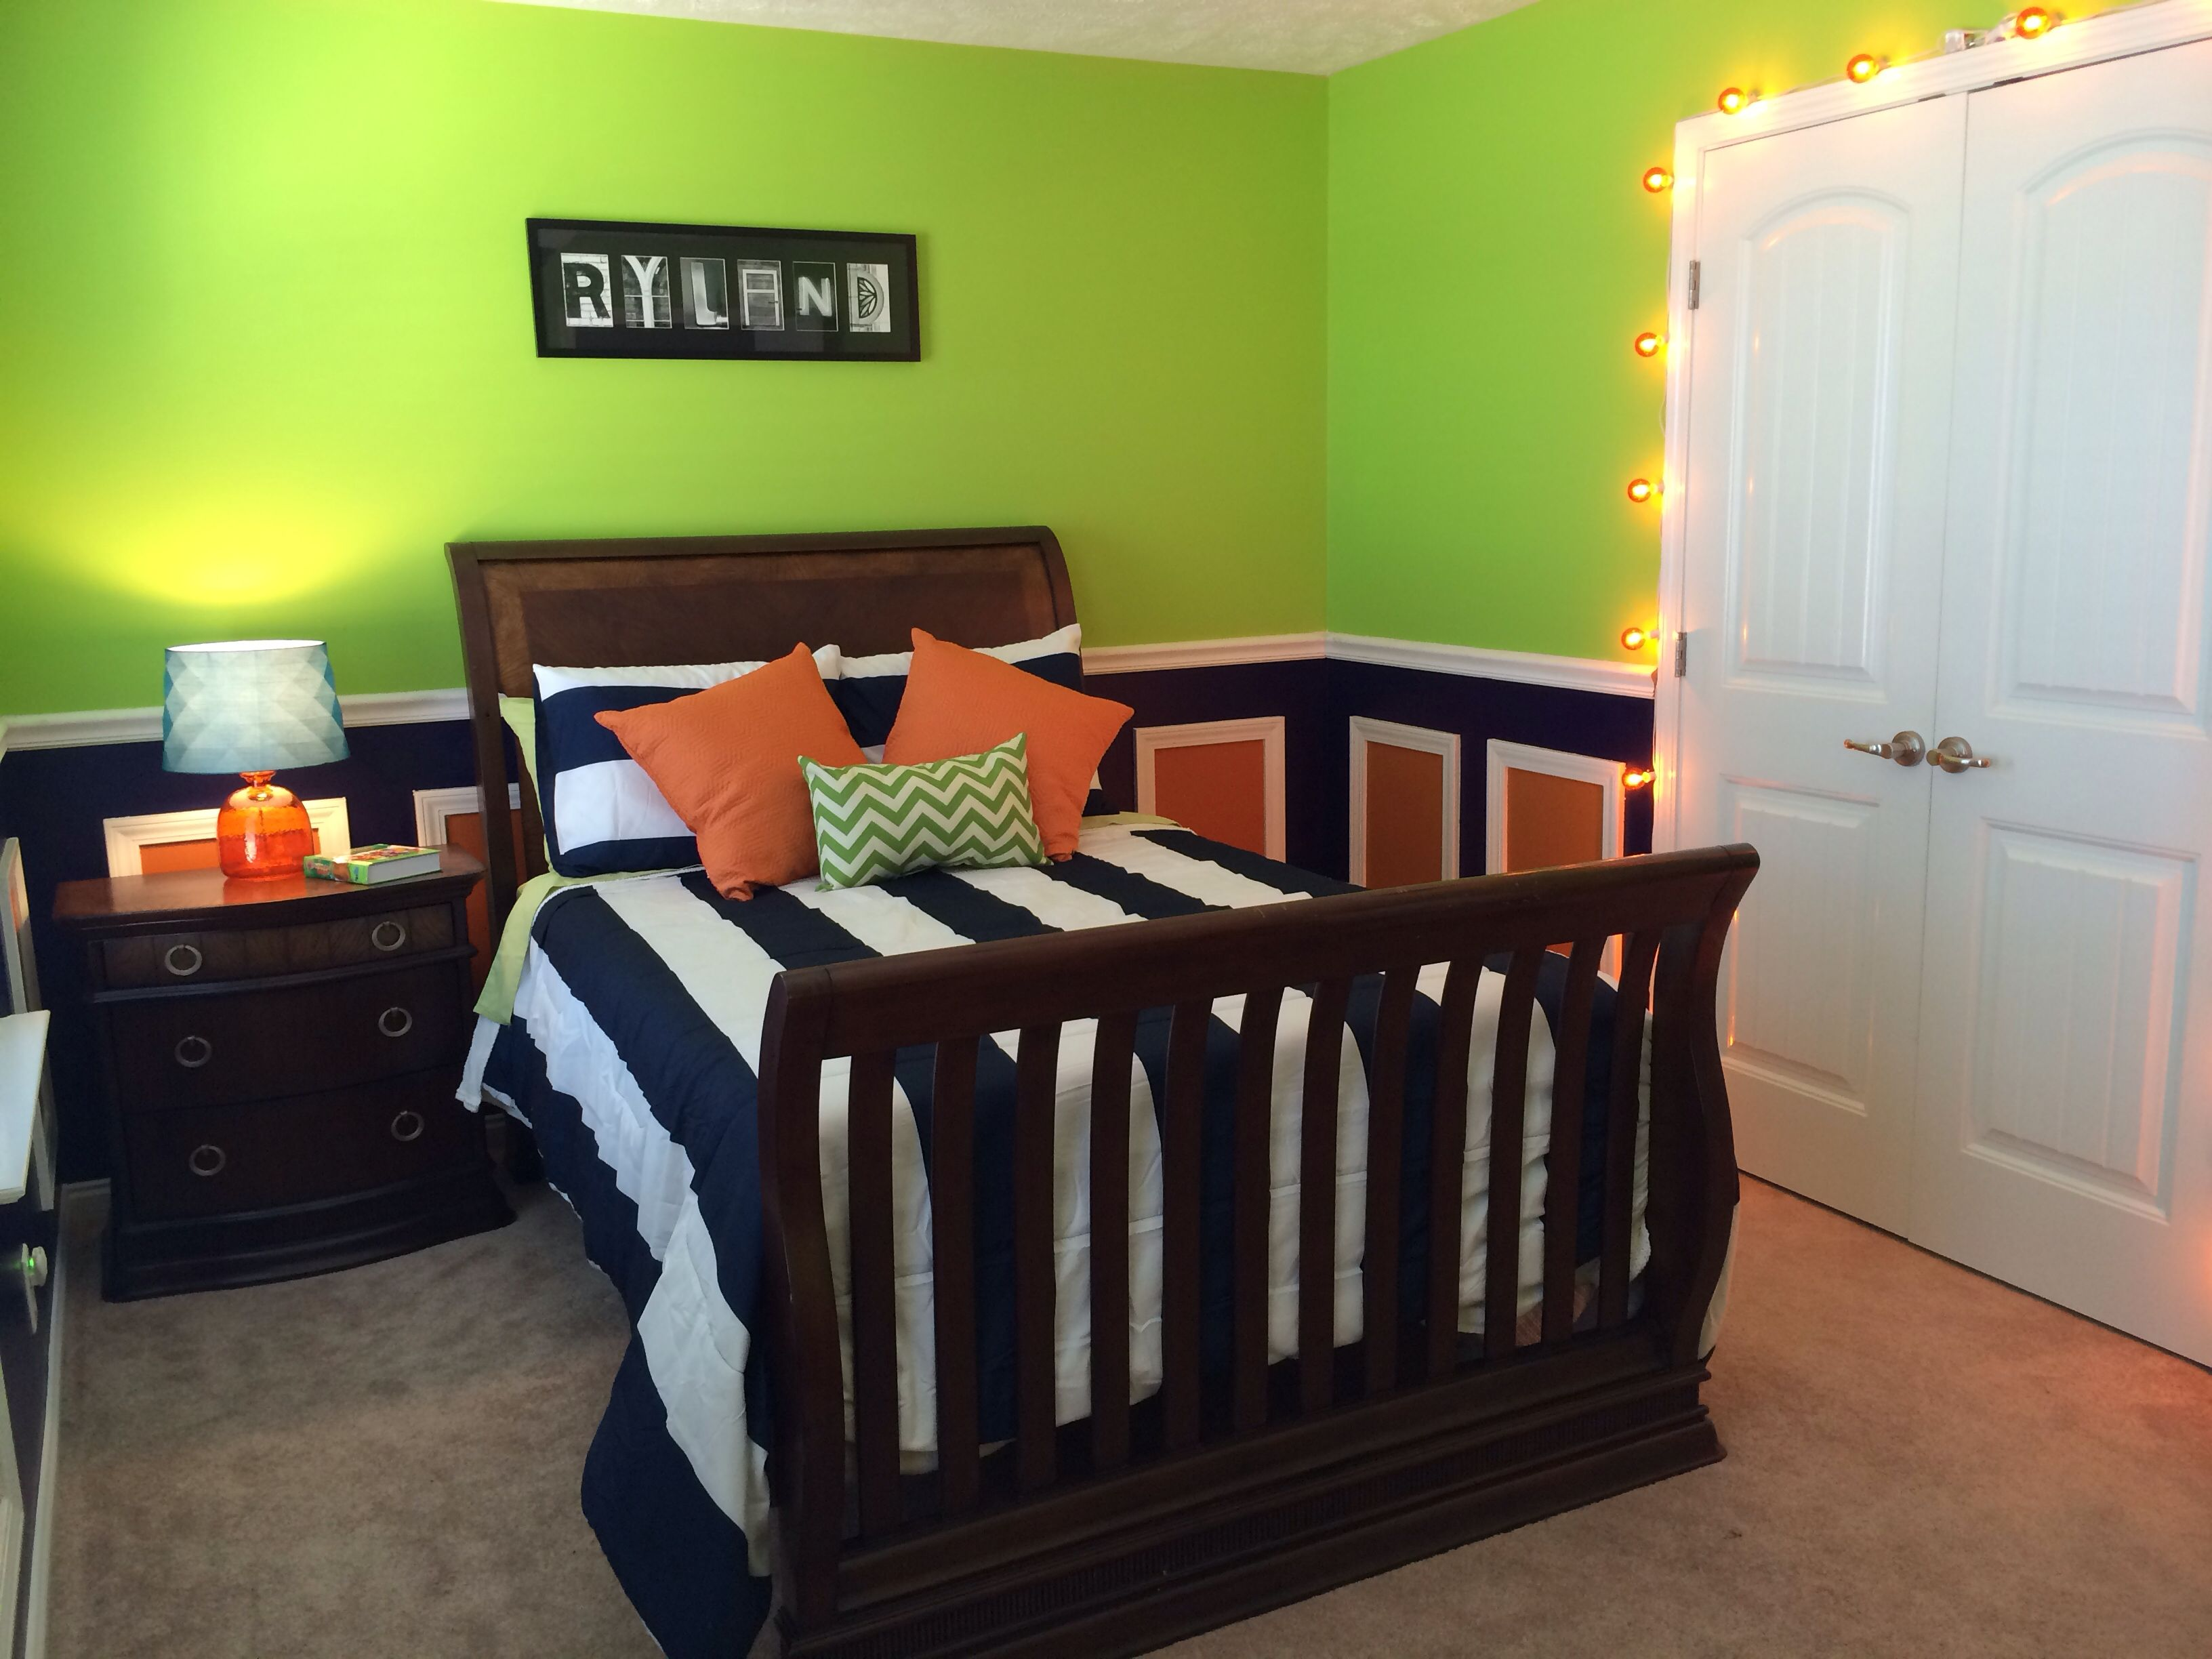 Pin By Amanda Lewis Morgan On Toddler Room For Ryland Green Kids Rooms Green Boys Room Green Bedroom Paint